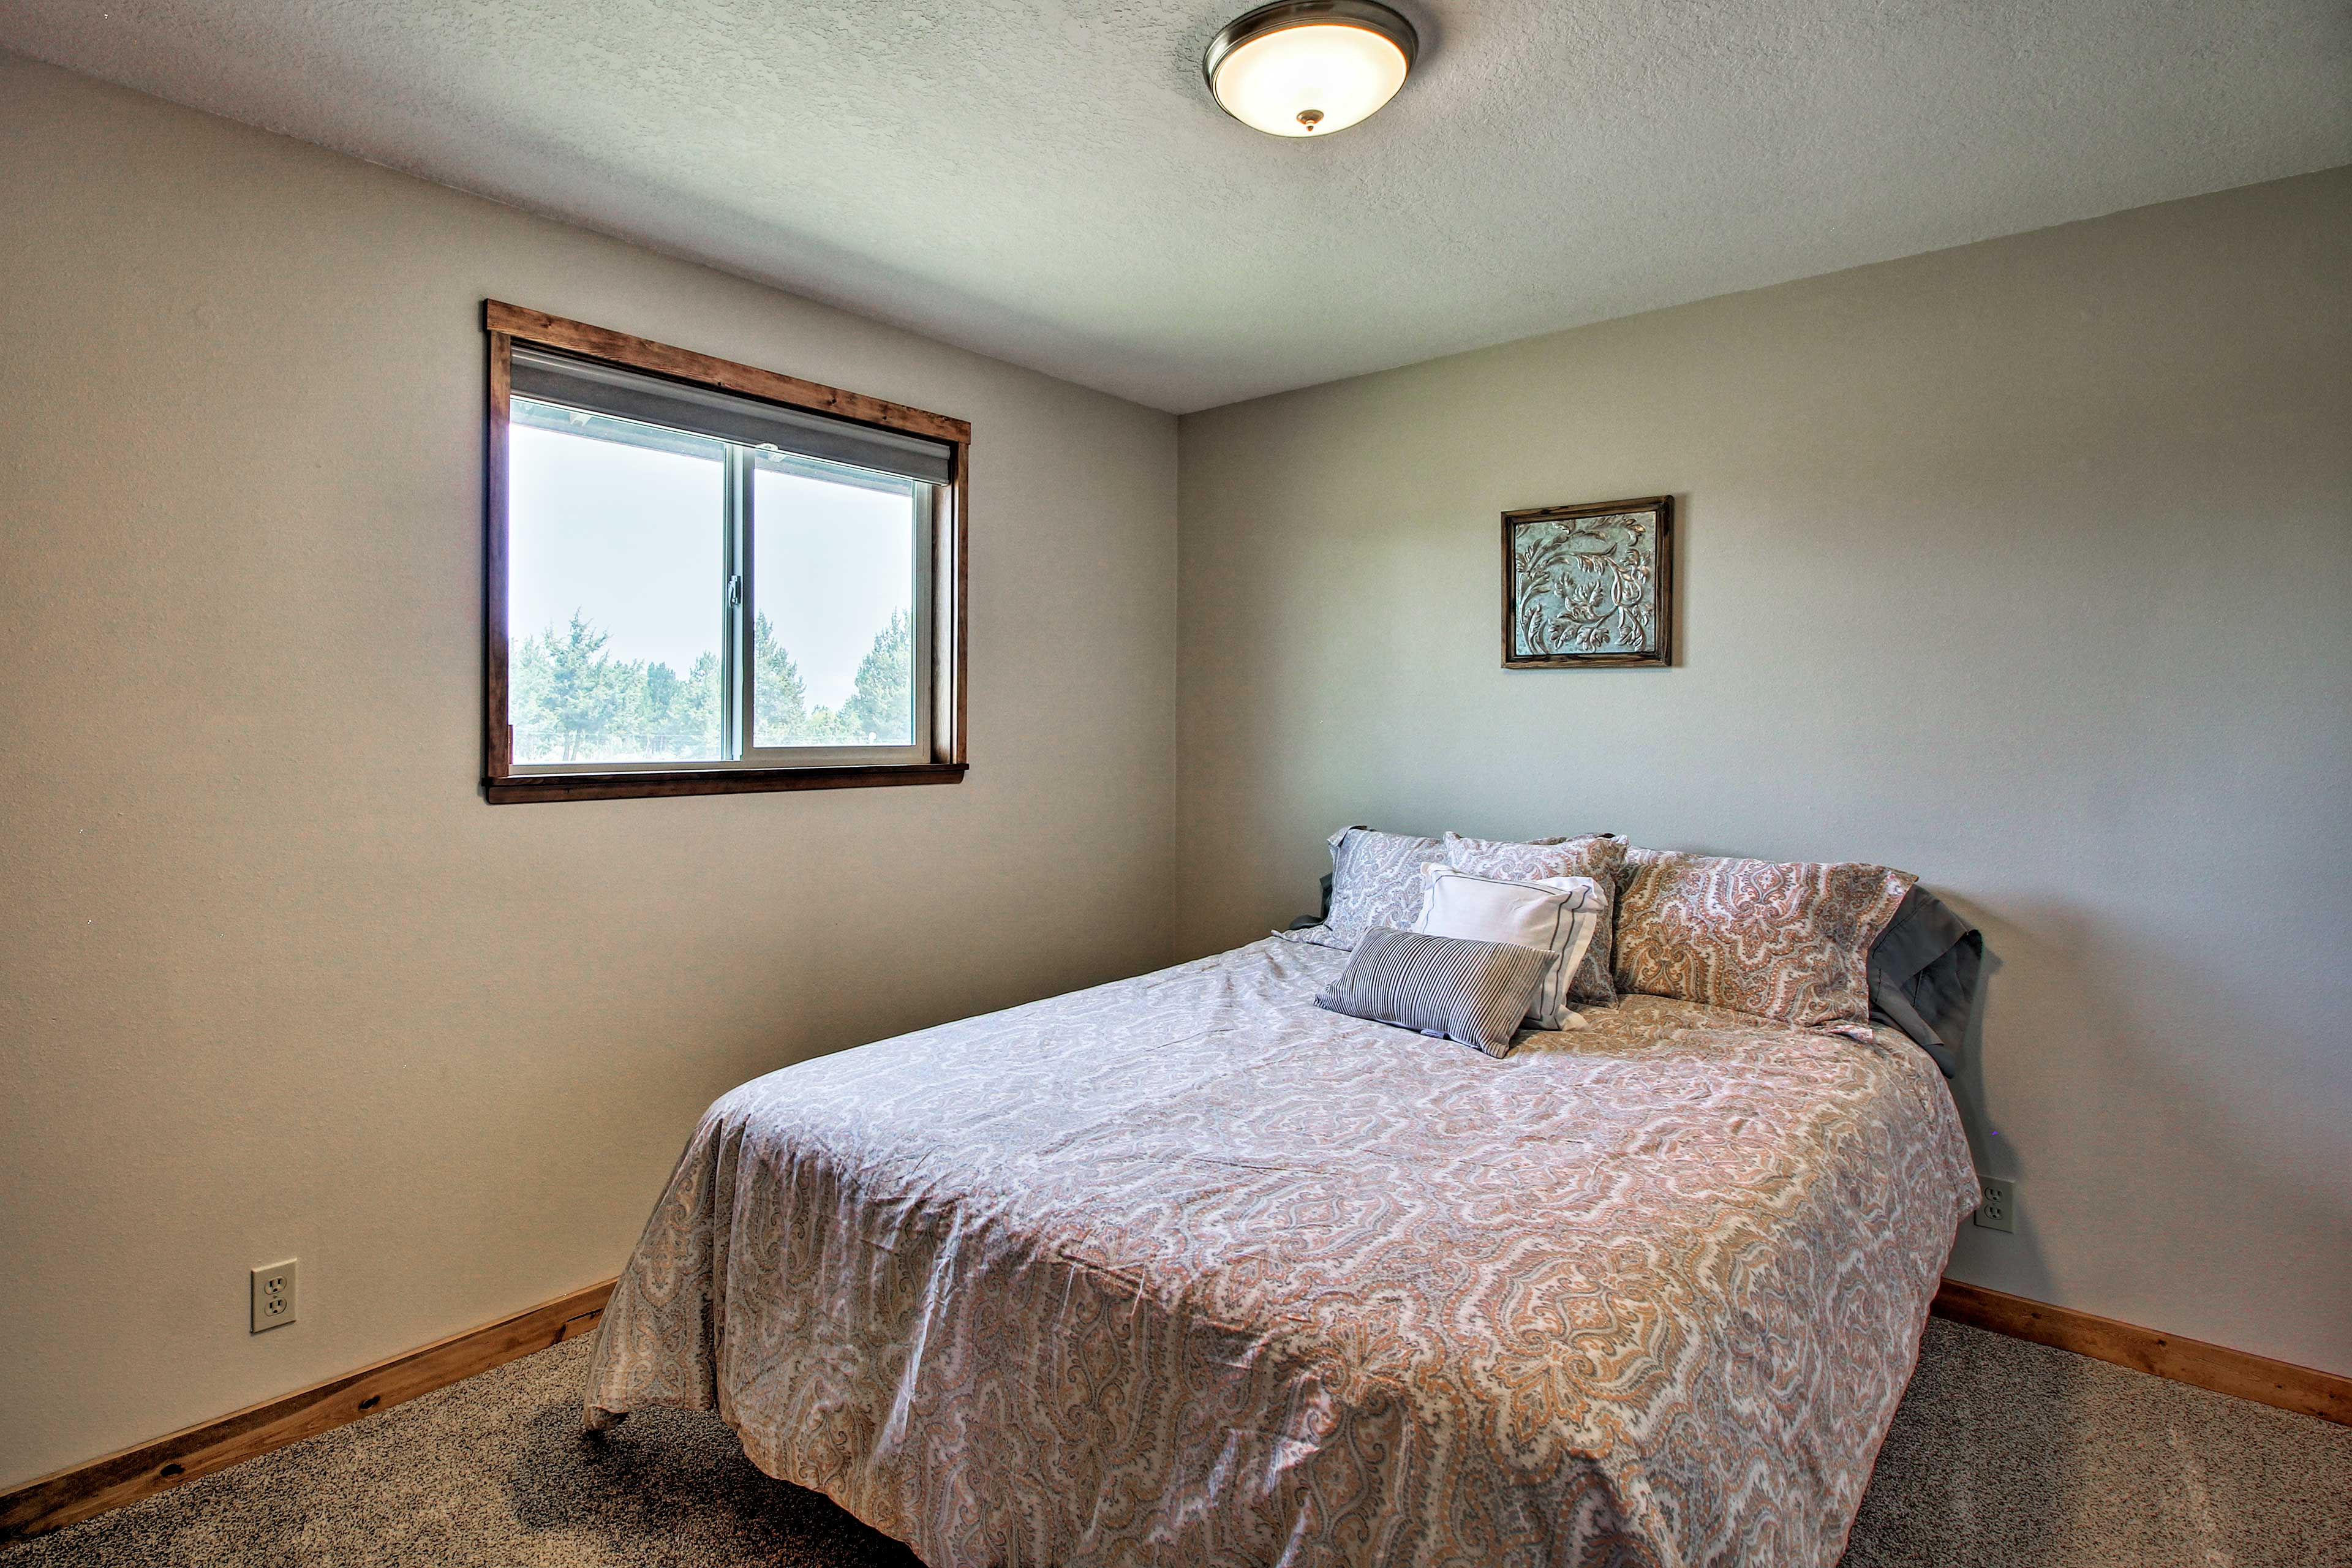 Two more guests can make themselves comfortable in the third bedroom.